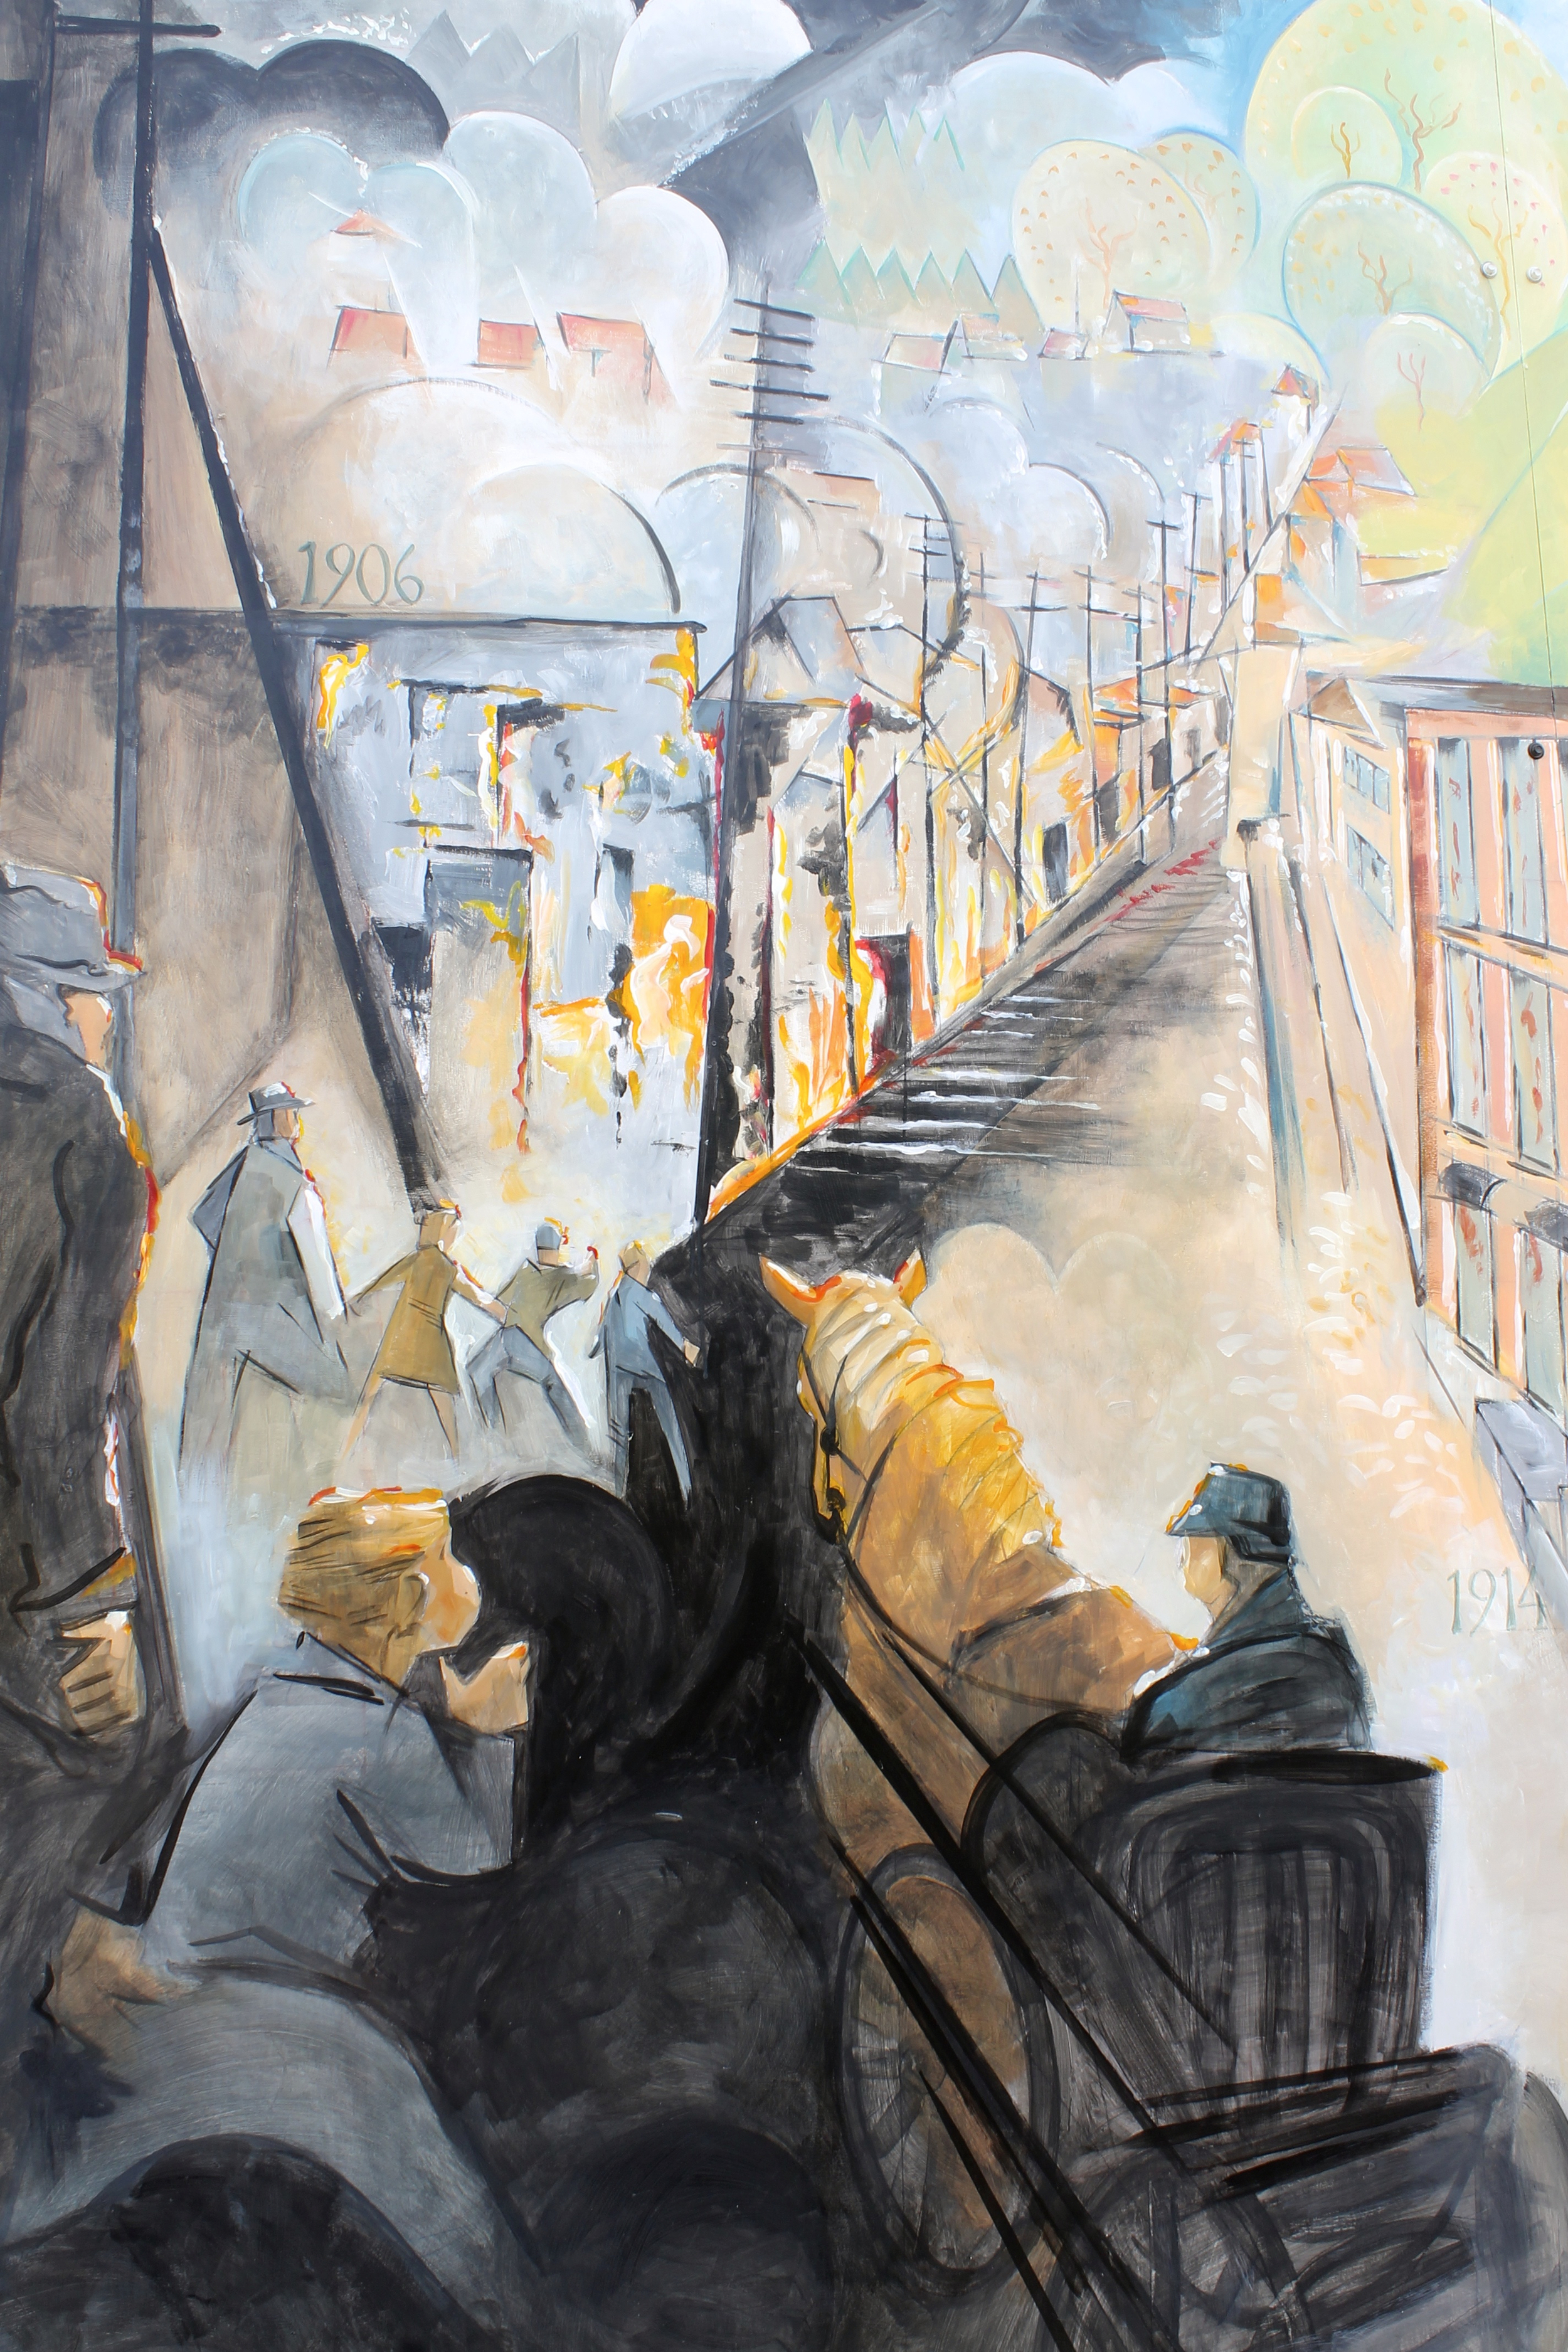 The Quiet Painter, by Michelle Annette Tremblay, Photo of Arne Roosman's mural by Michelle Annette Tremblay